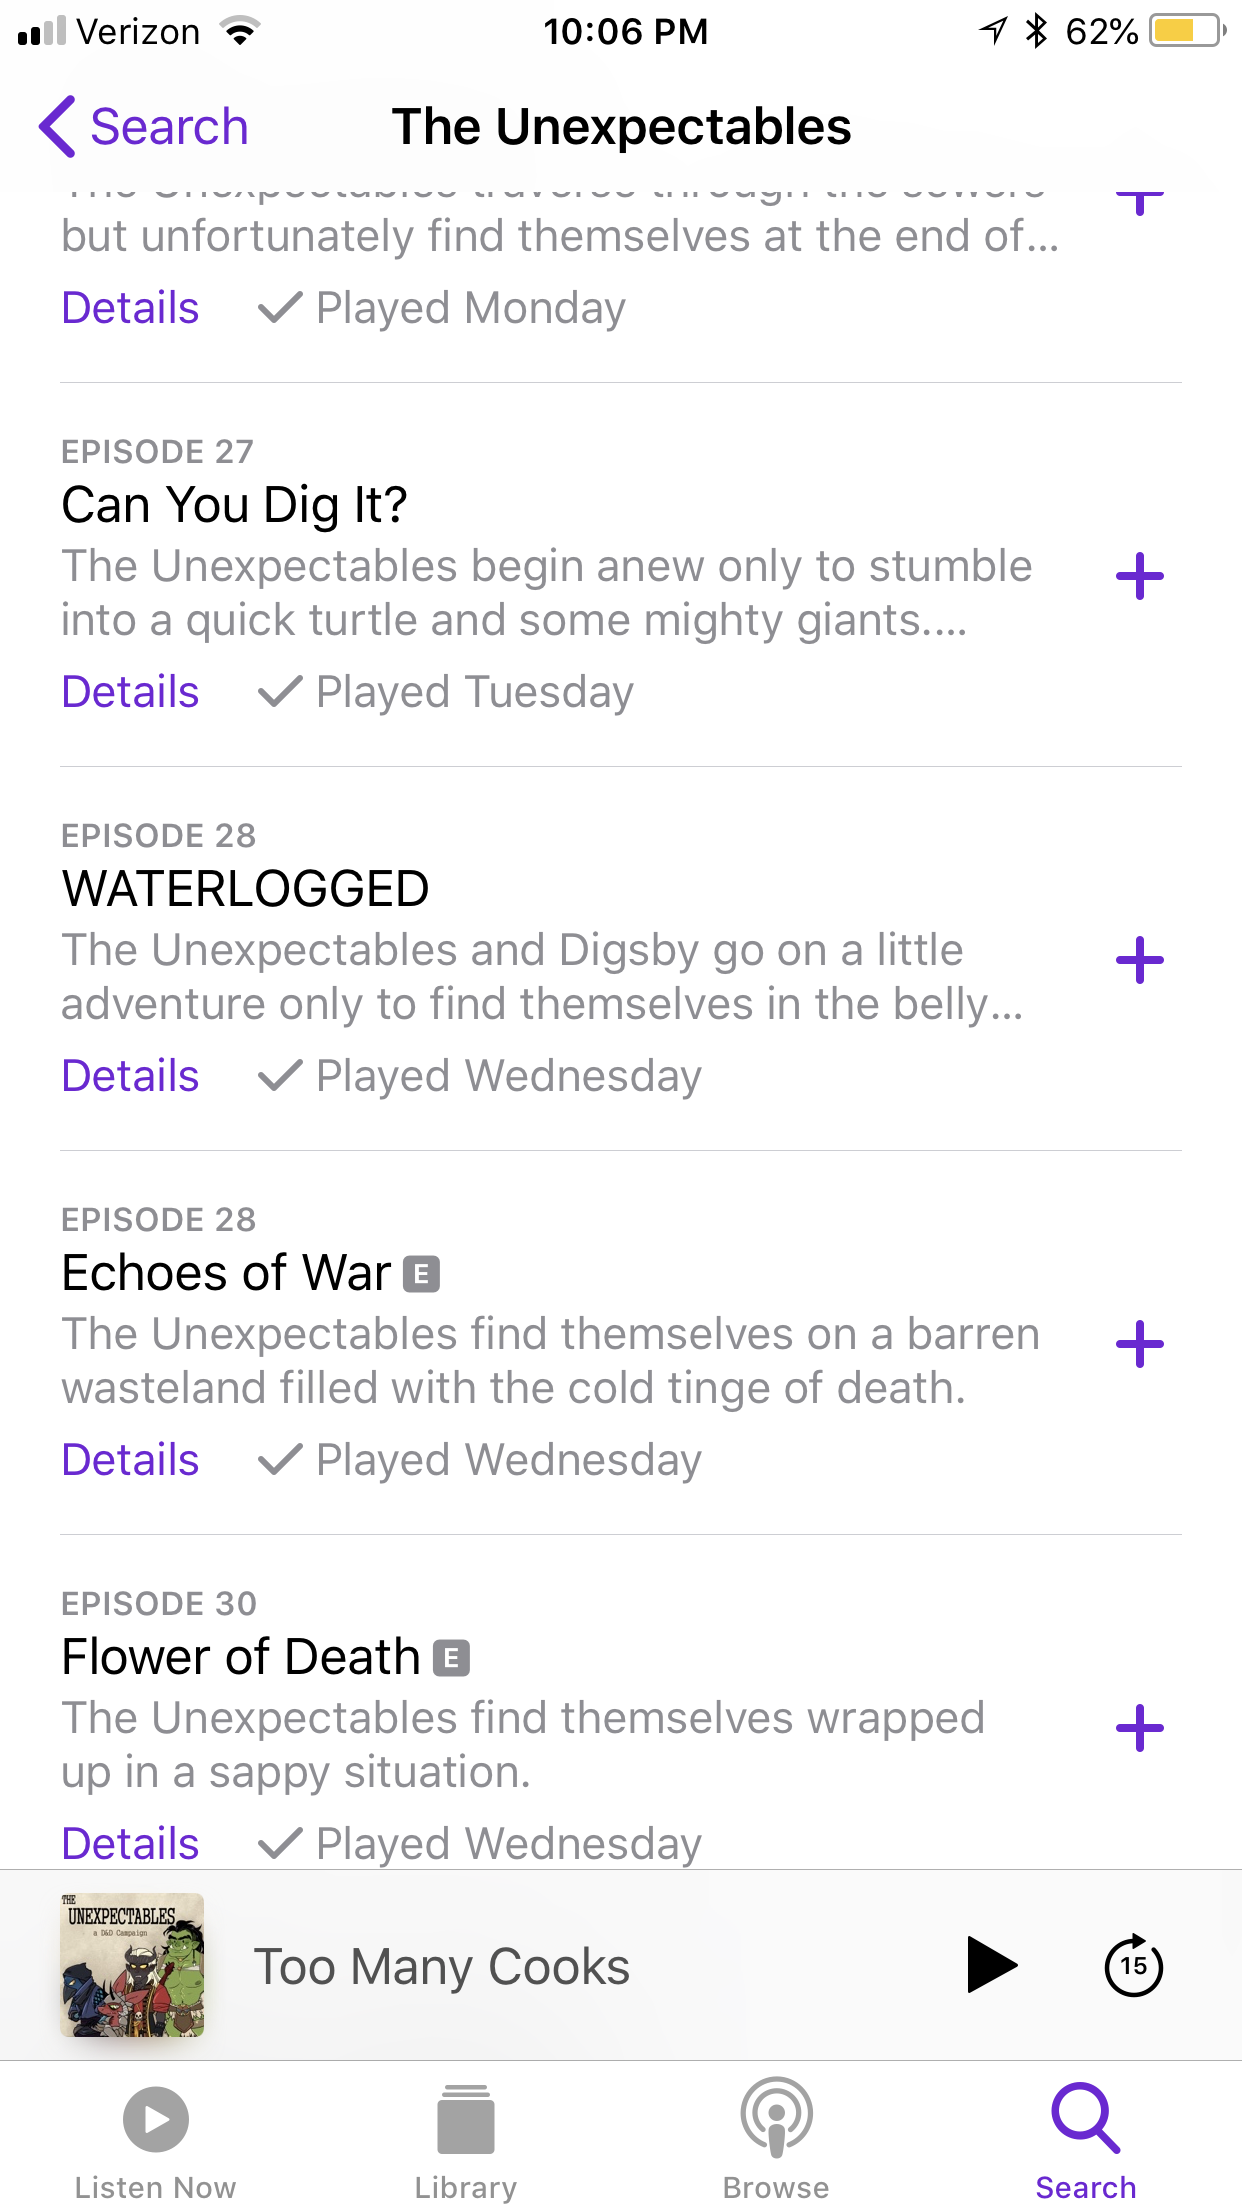 Here is podcast for the unexpectables Digsby was introduced in episode 27